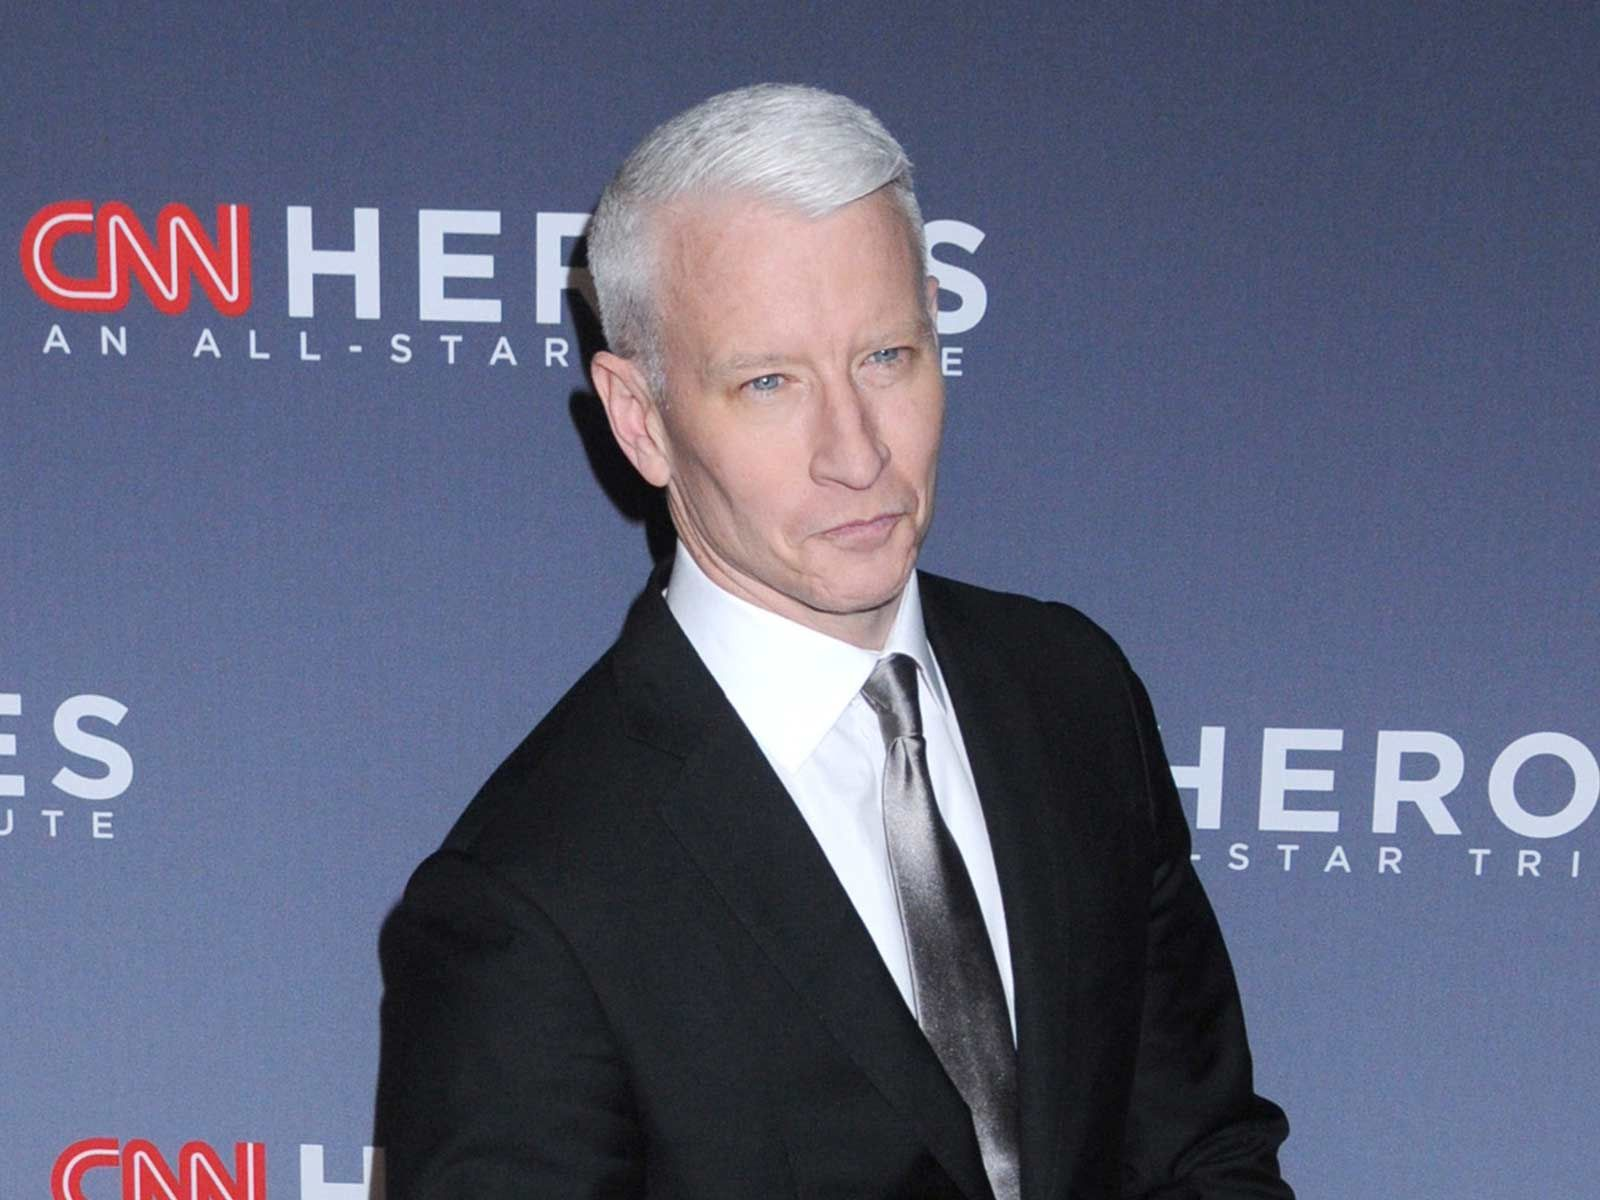 Anderson Cooper Nude Pics how did andy cohen and anderson cooper do as cnn new year's